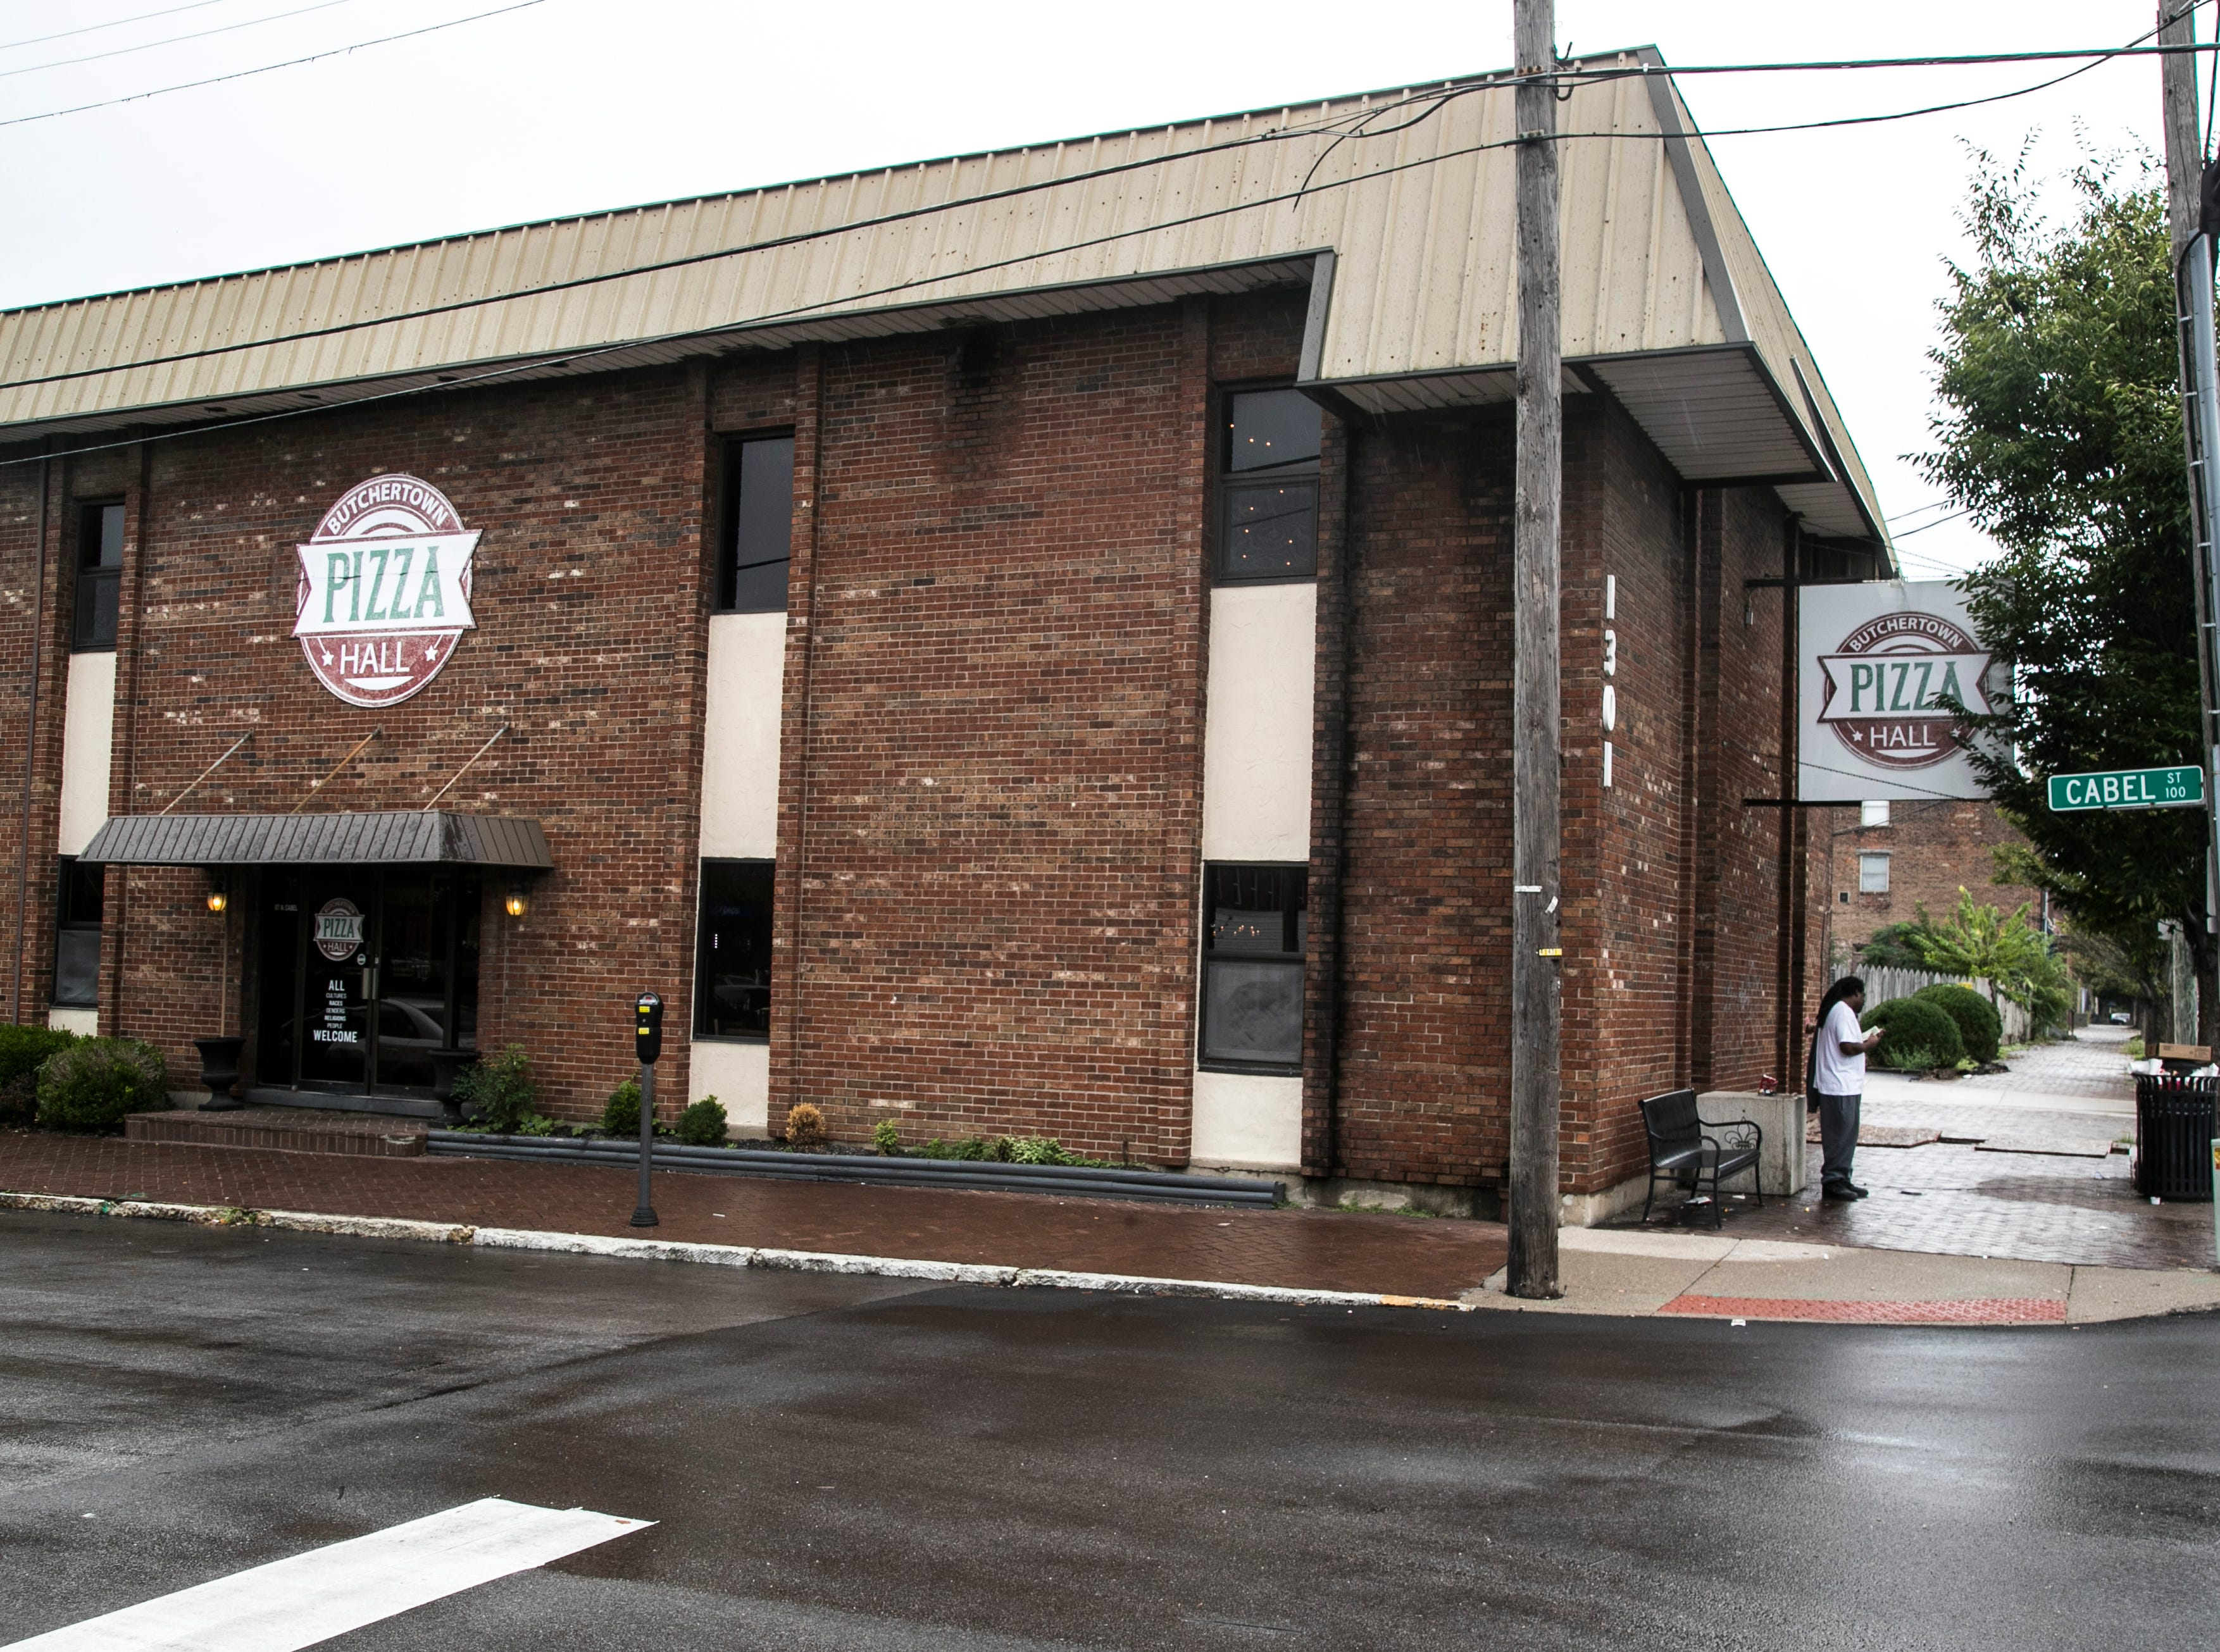 Butchertown Pizza Hall, in the former Hall's Cafeteria, is on Story Avenue next to Cabel Street. There's lunch specials during the day and open until midnight on Friday and Saturday.  Sept. 27, 2018